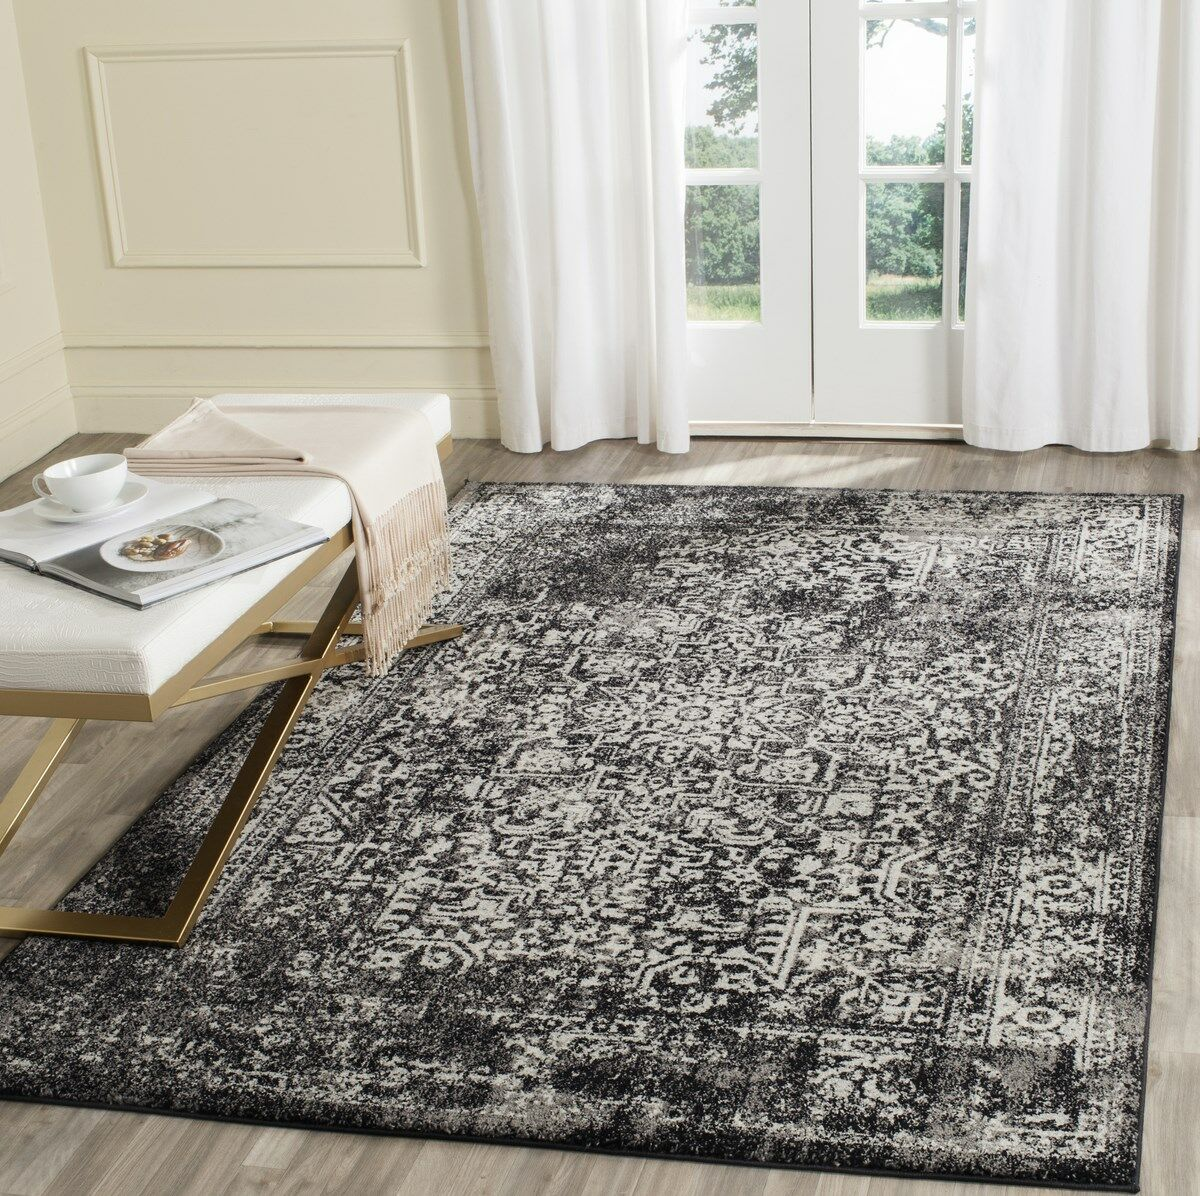 Elson Black/Gray Area Rug Rug Size: Rectangle 8' x 10'